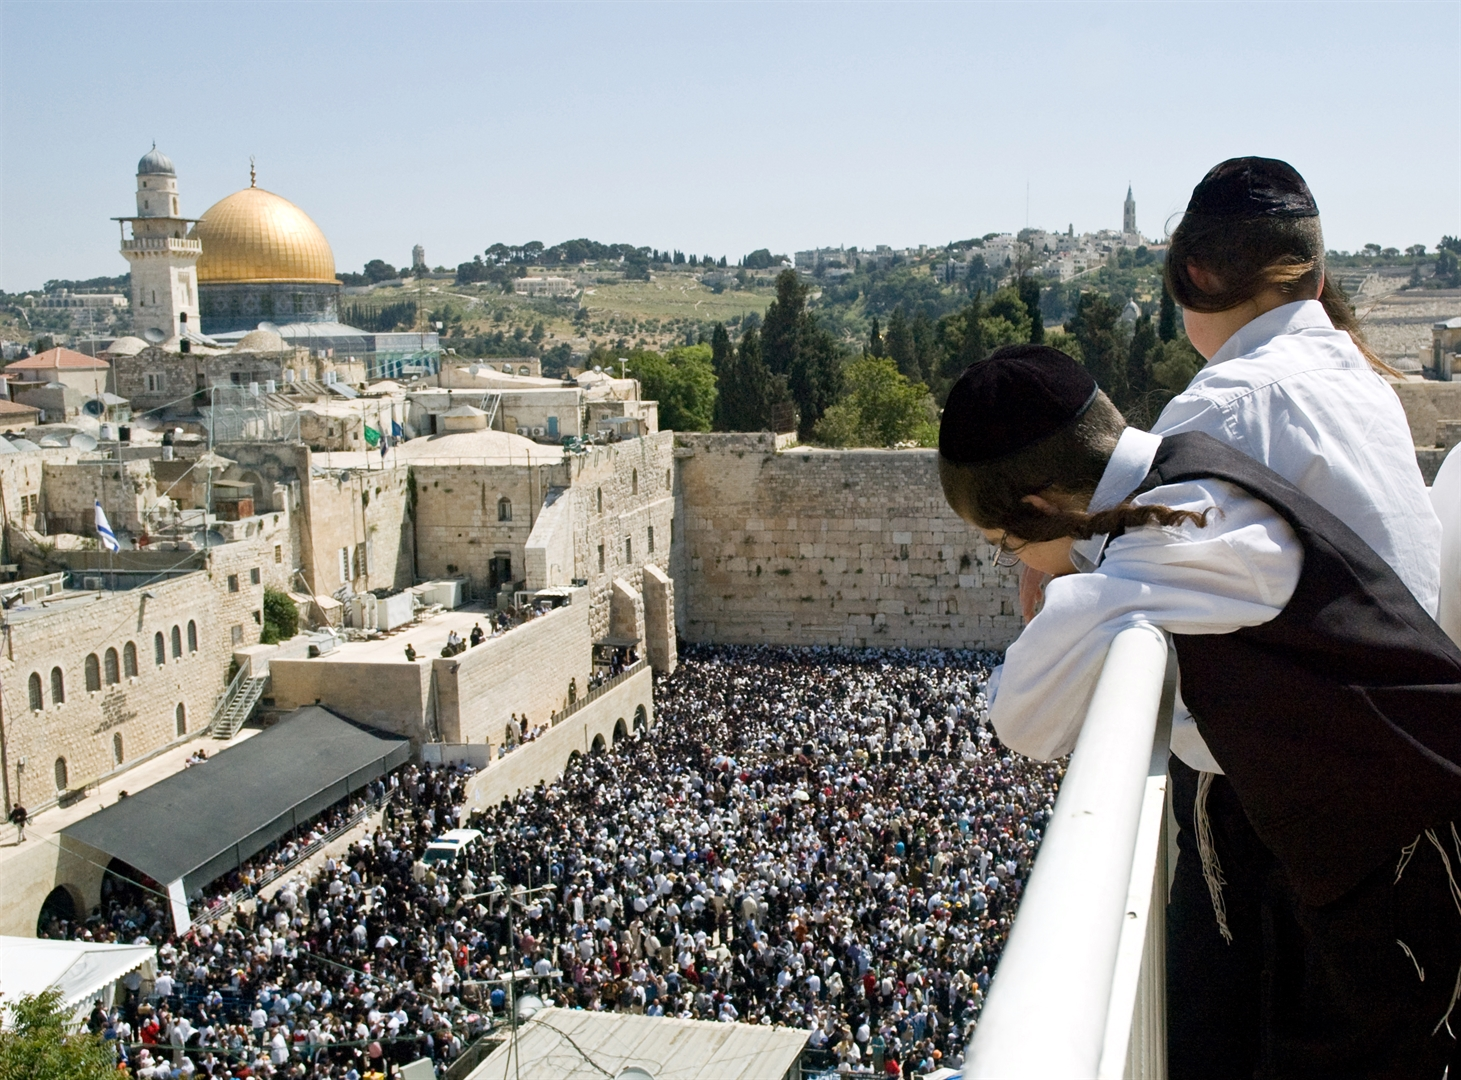 Orthodox Jewish children watch as Israelis gather at the Western (Wailing) Wall for prayer.